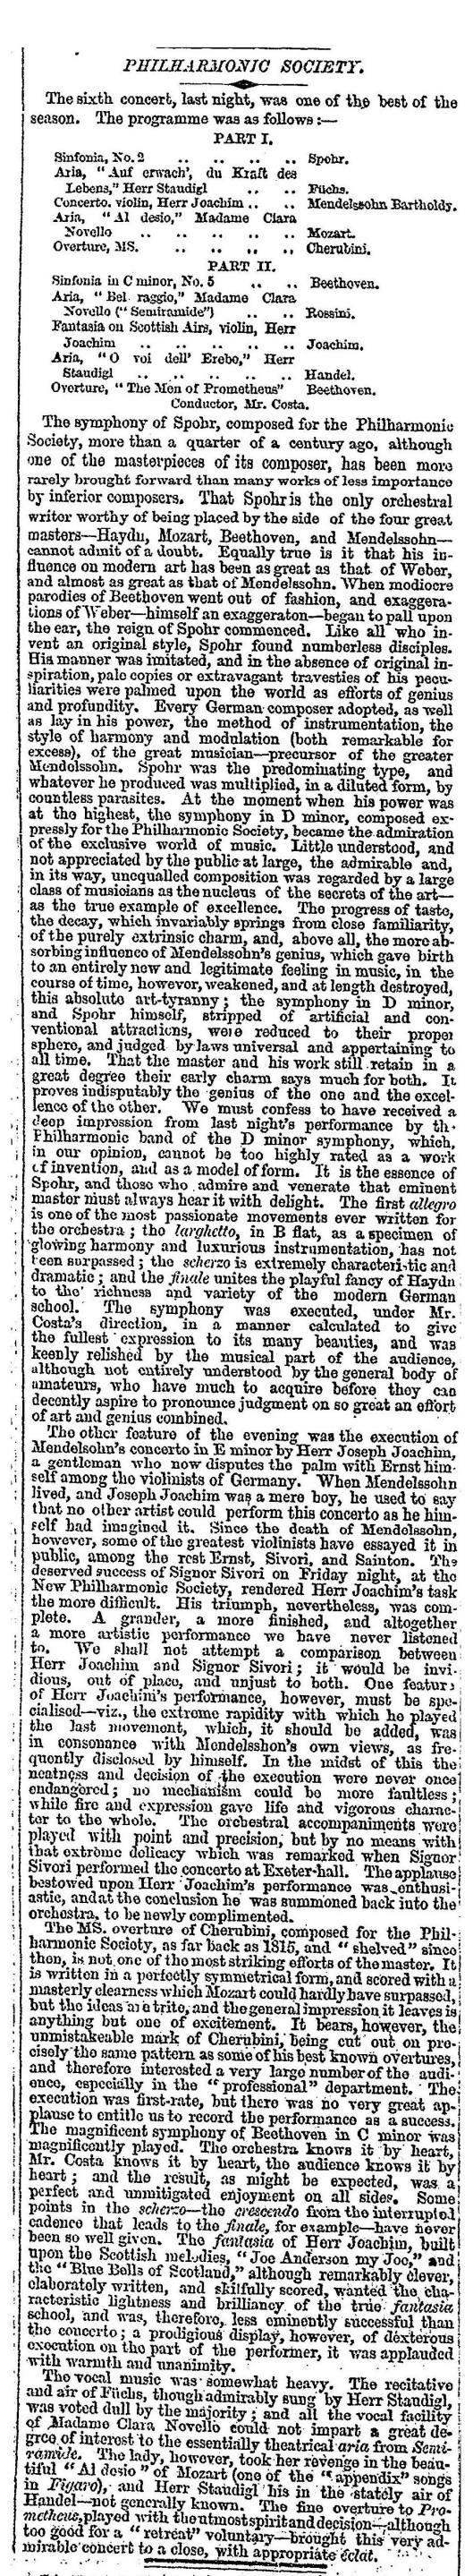 Times (London) Review June 1 1852_Page_1